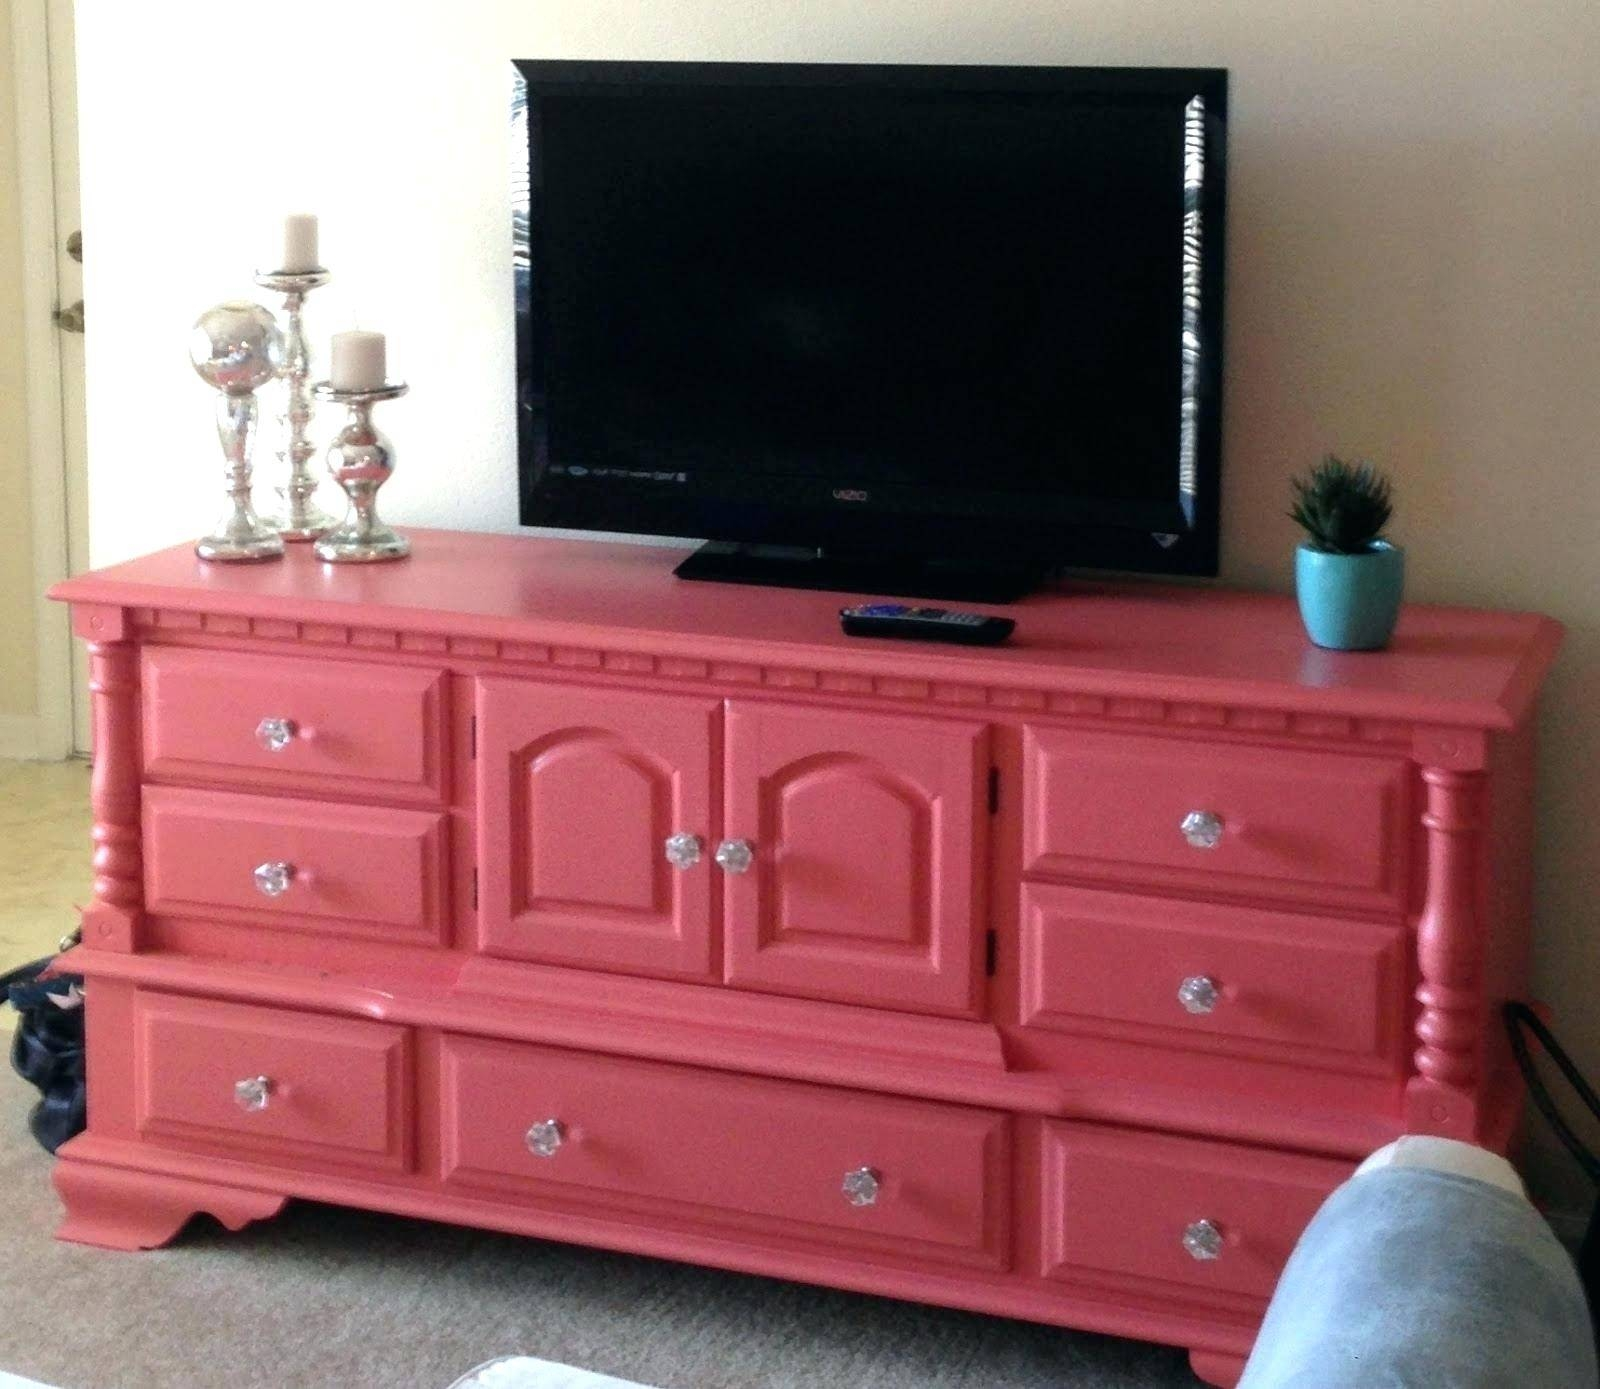 Tv Stand: Fascinating Rustic Red Tv Stand For Living Room (View 10 of 15)